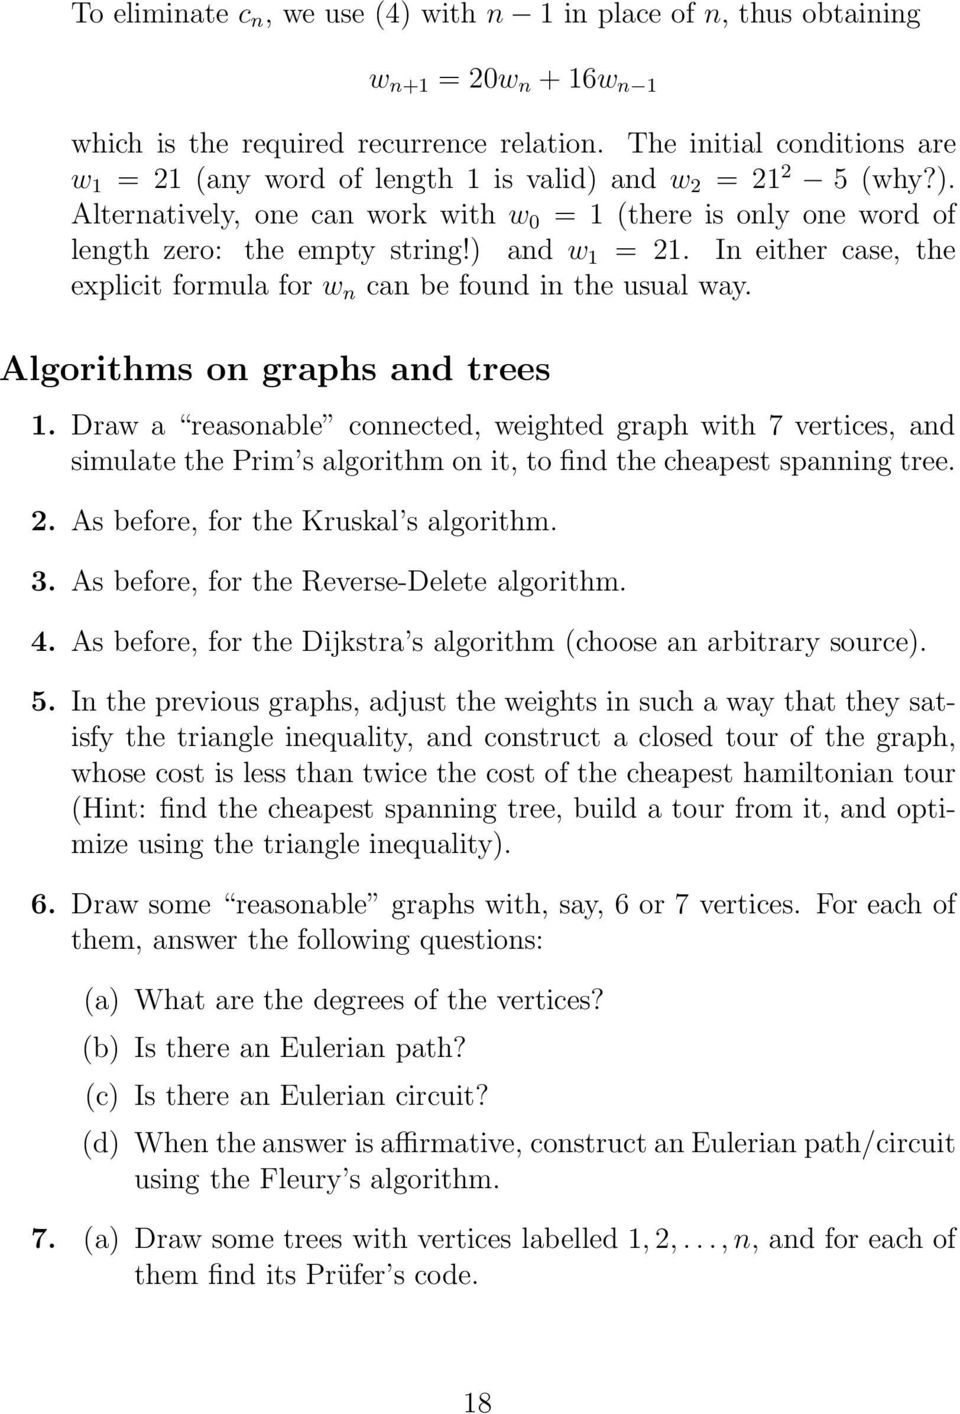 ) and w 1 = 21. In either case, the explicit formula for w n can be found in the usual way. Algorithms on graphs and trees 1.